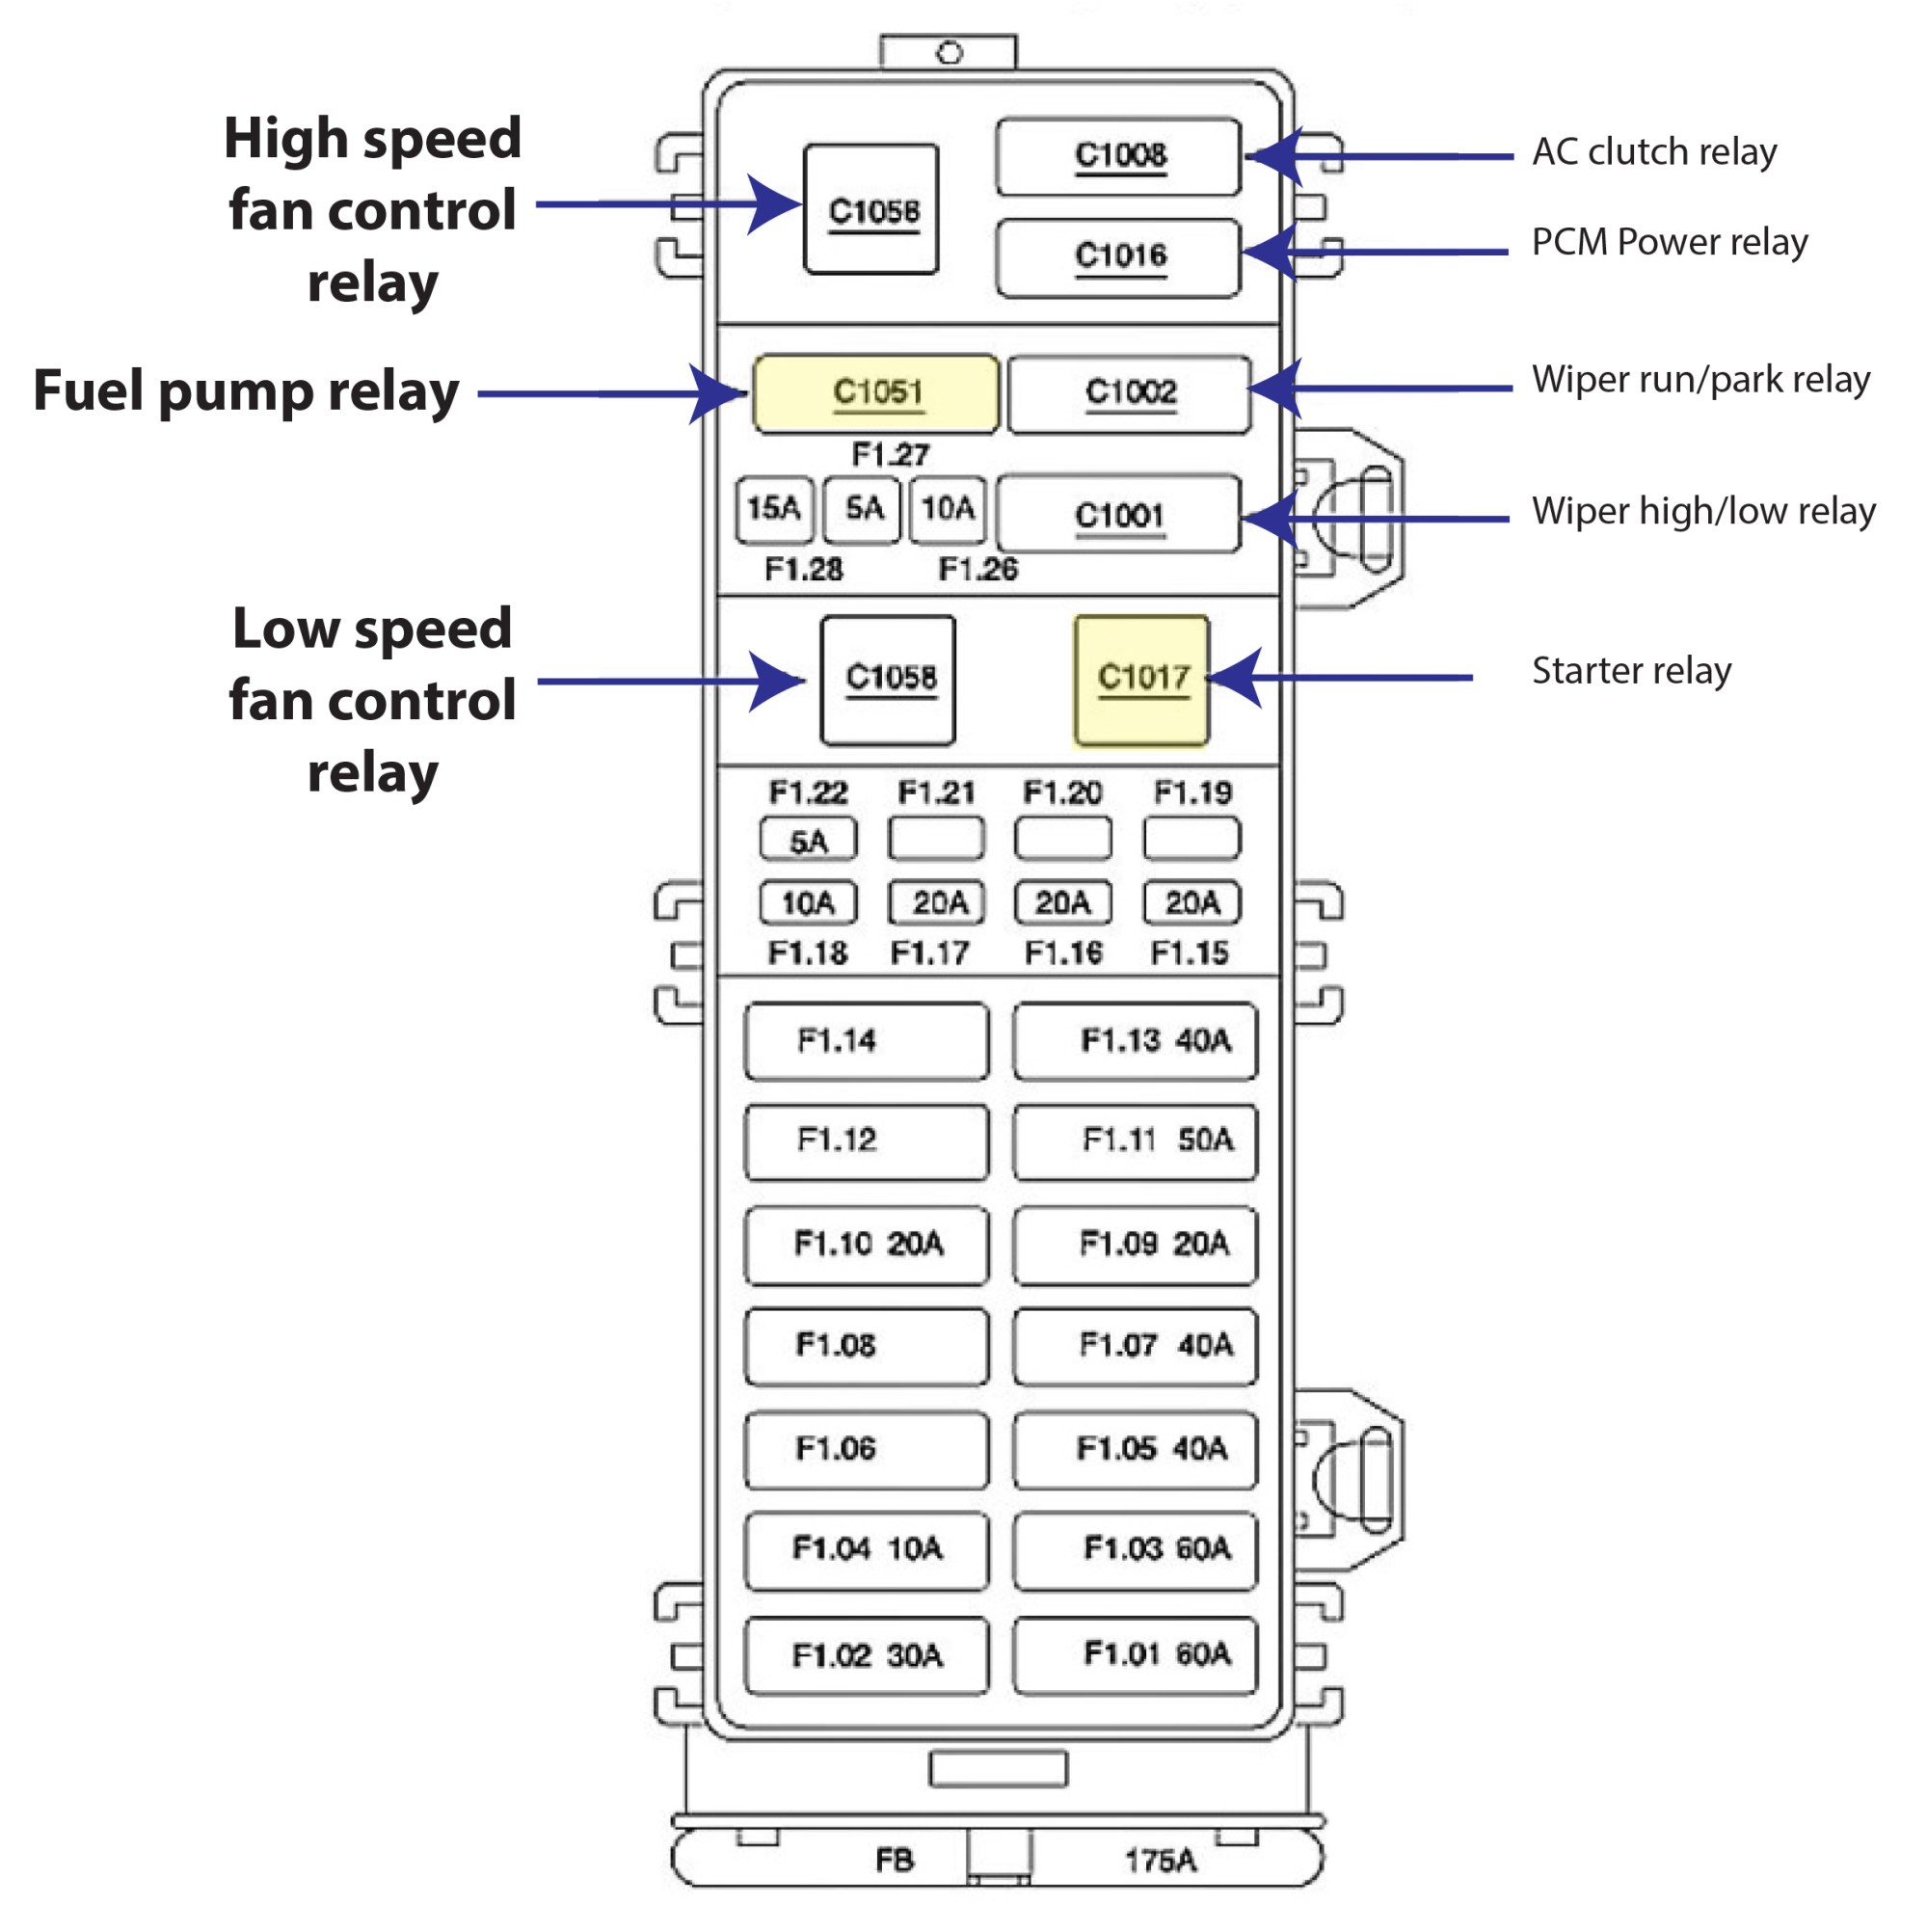 hight resolution of 93 taurus fuse box wiring diagrams 93 ford taurus fuse box diagram